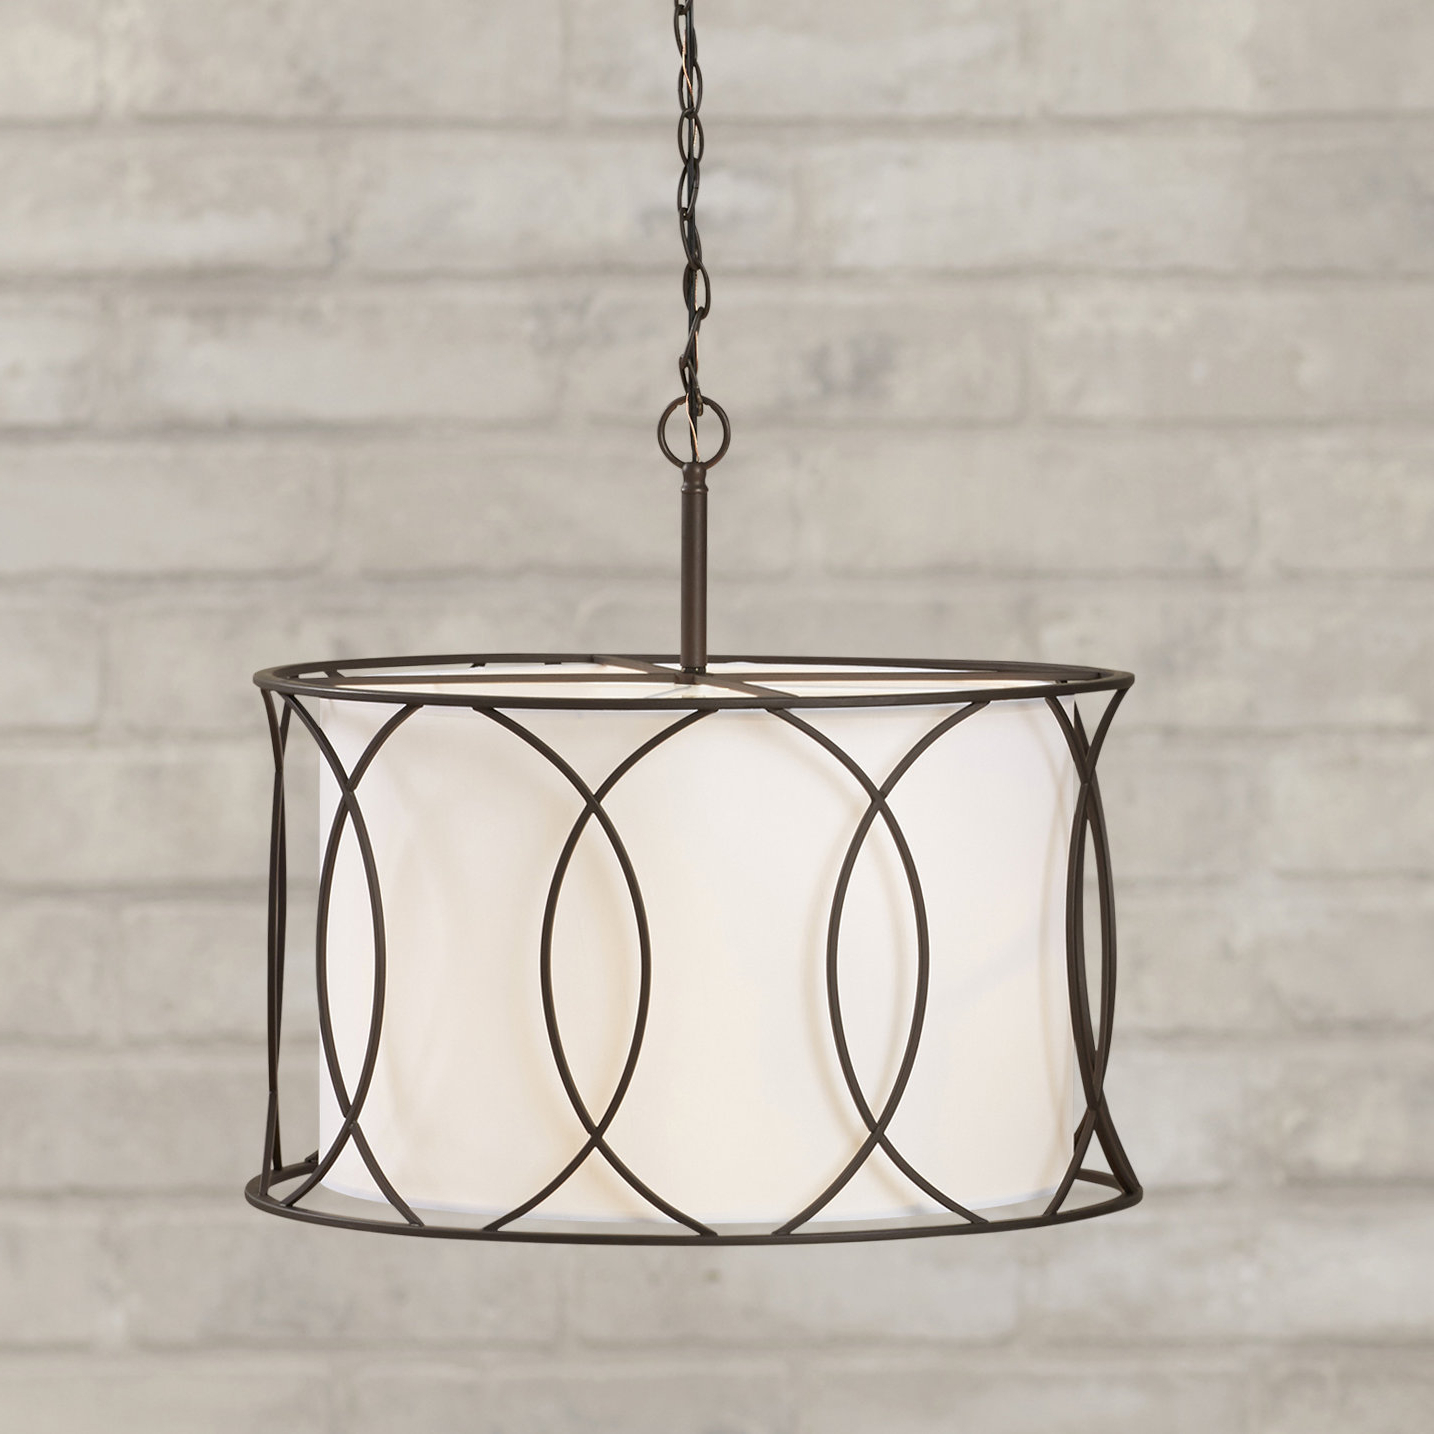 Famous Farrier 3 Light Lantern Drum Pendants Regarding Tadwick 3 Light Single Drum Chandelier (View 5 of 20)